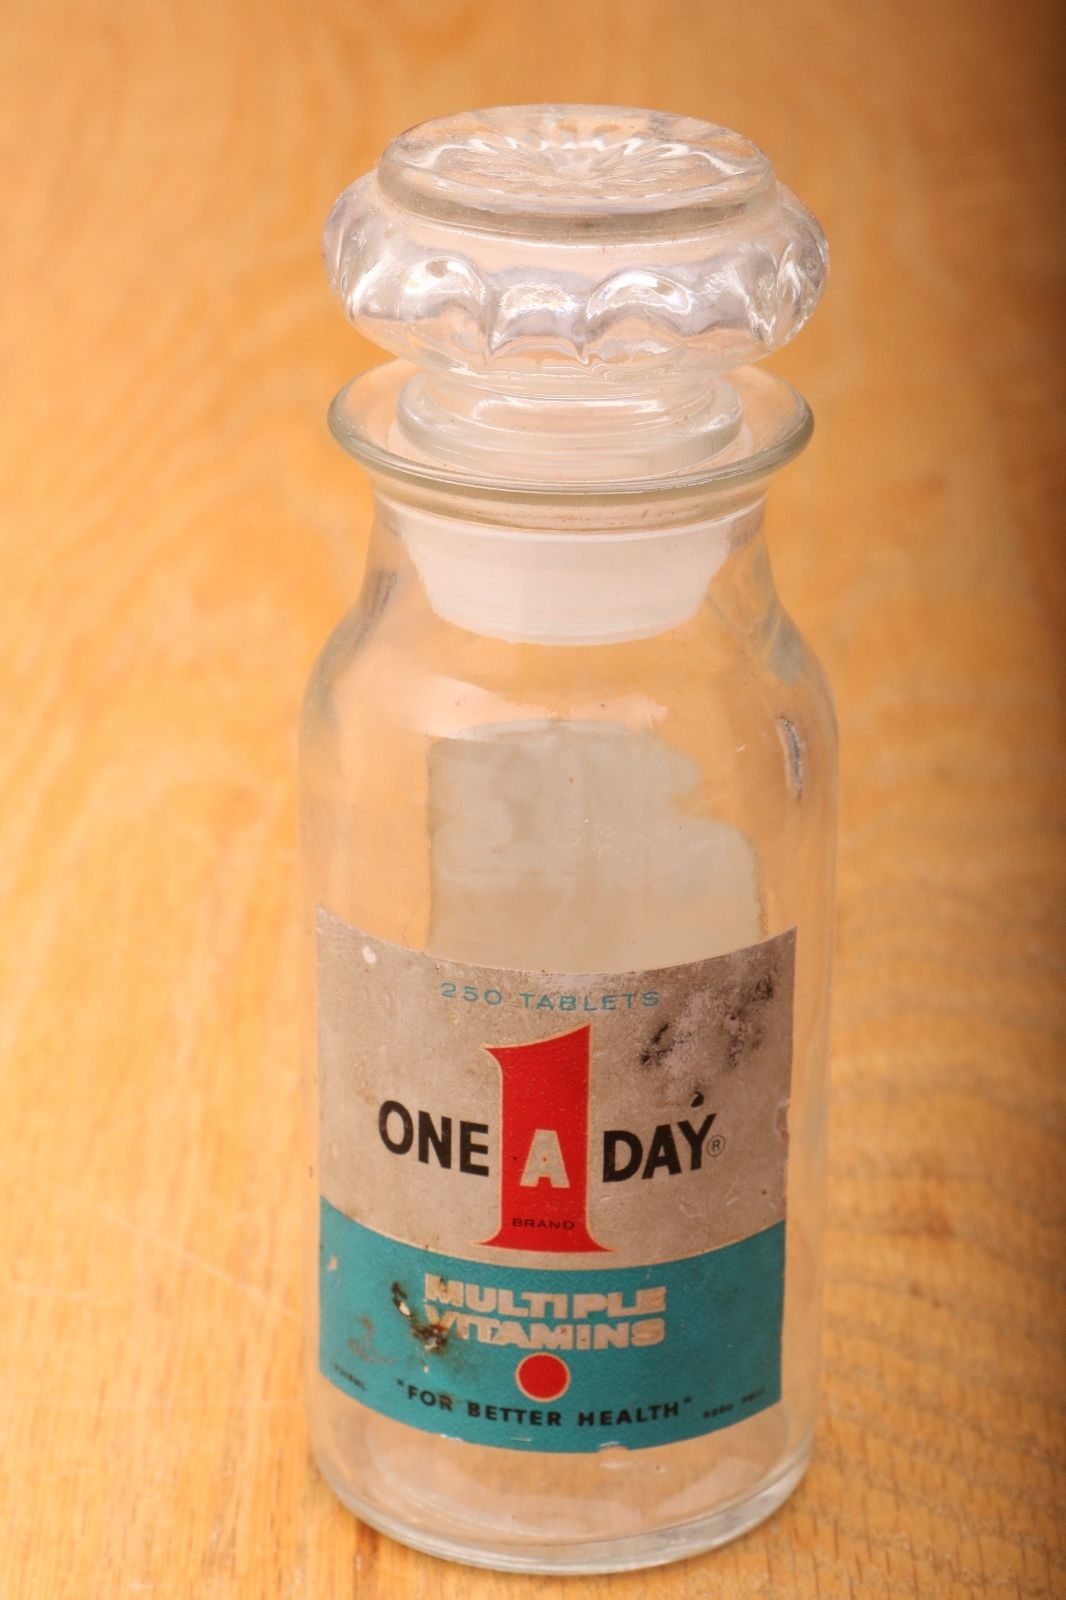 One A Day Multi Vitamin Vintage Glass Bottle 250 Tablets ...